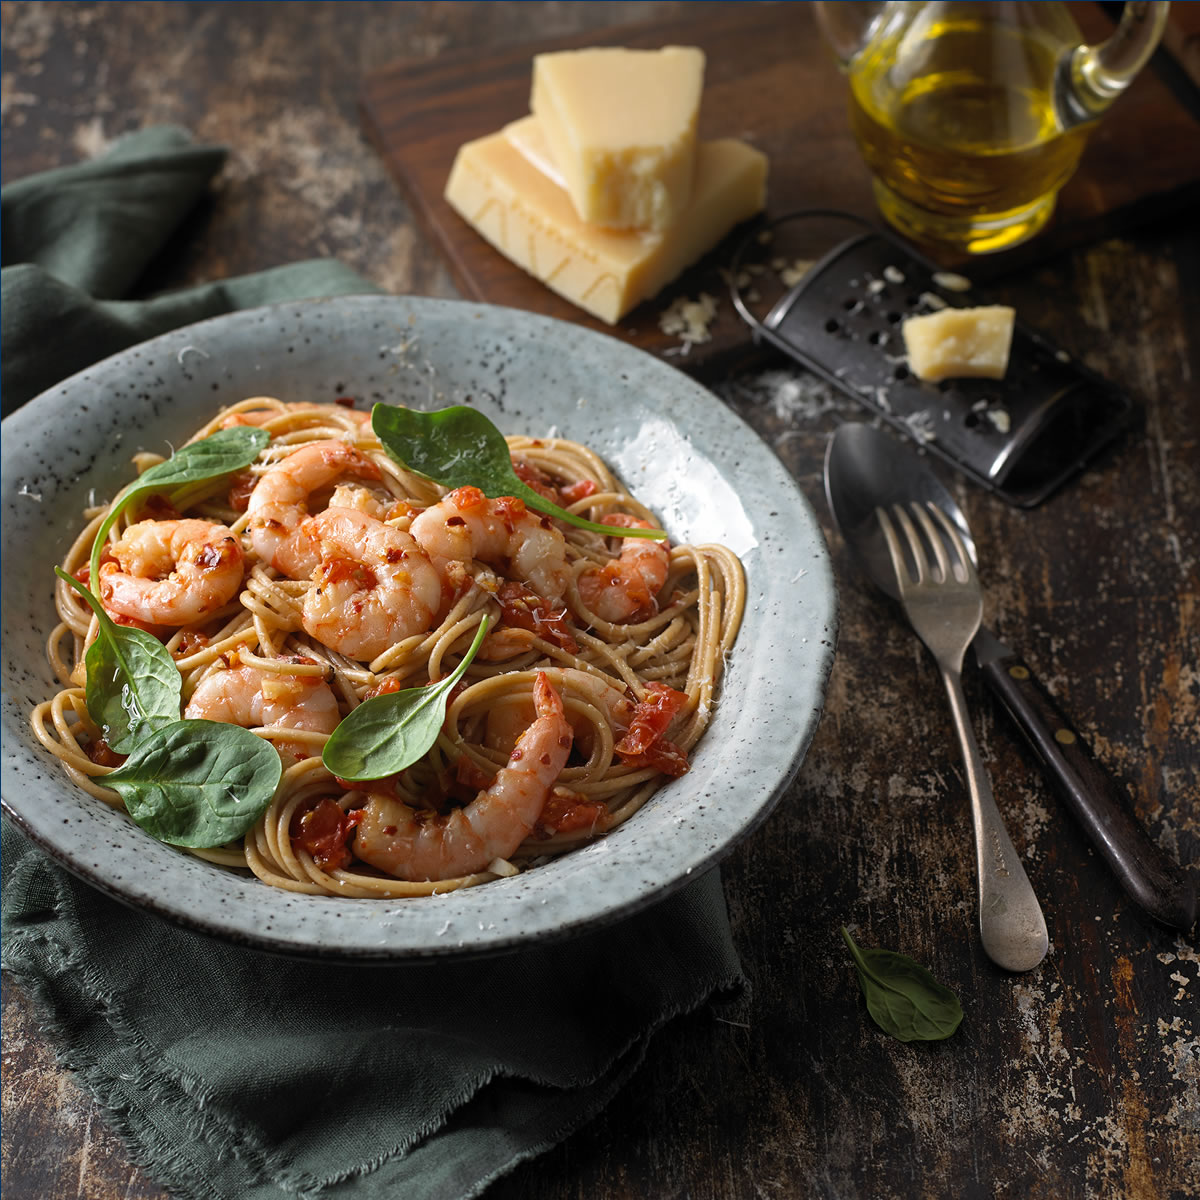 Spaghetti with Shrimp, Olive Oil, Garlic and Chili Flakes